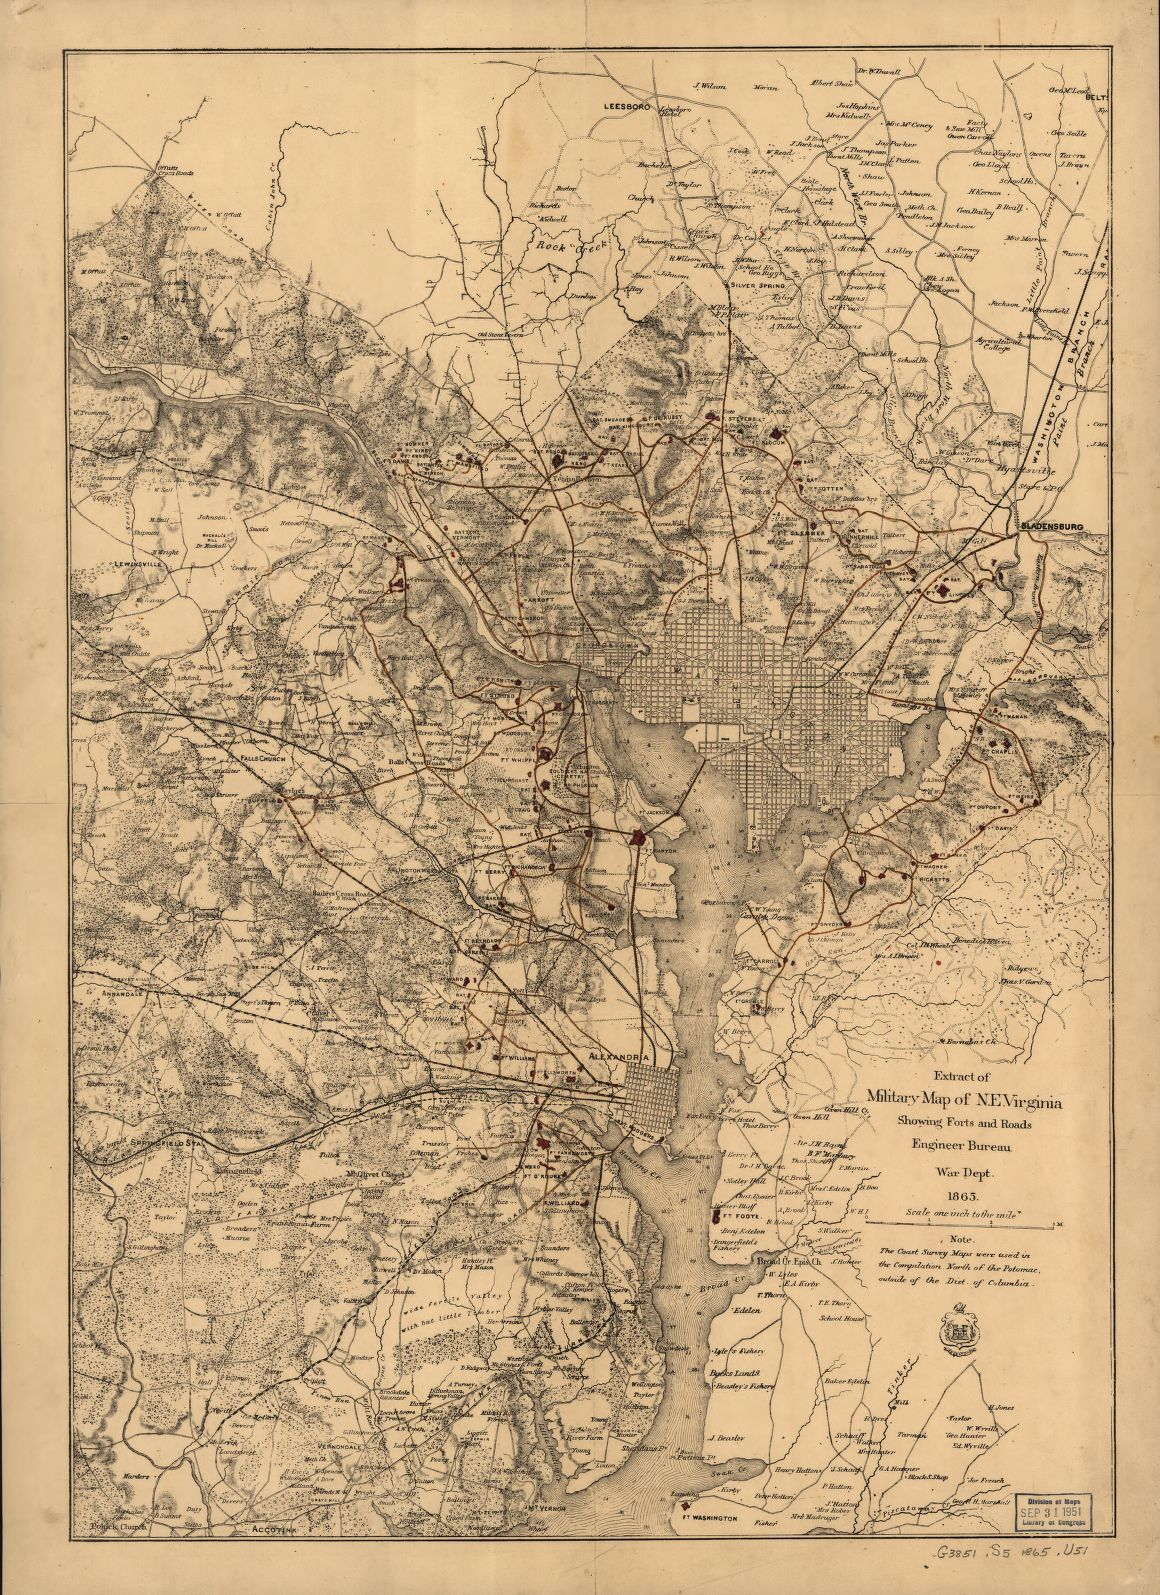 Extract of military map of N E Virginia showing forts and roads